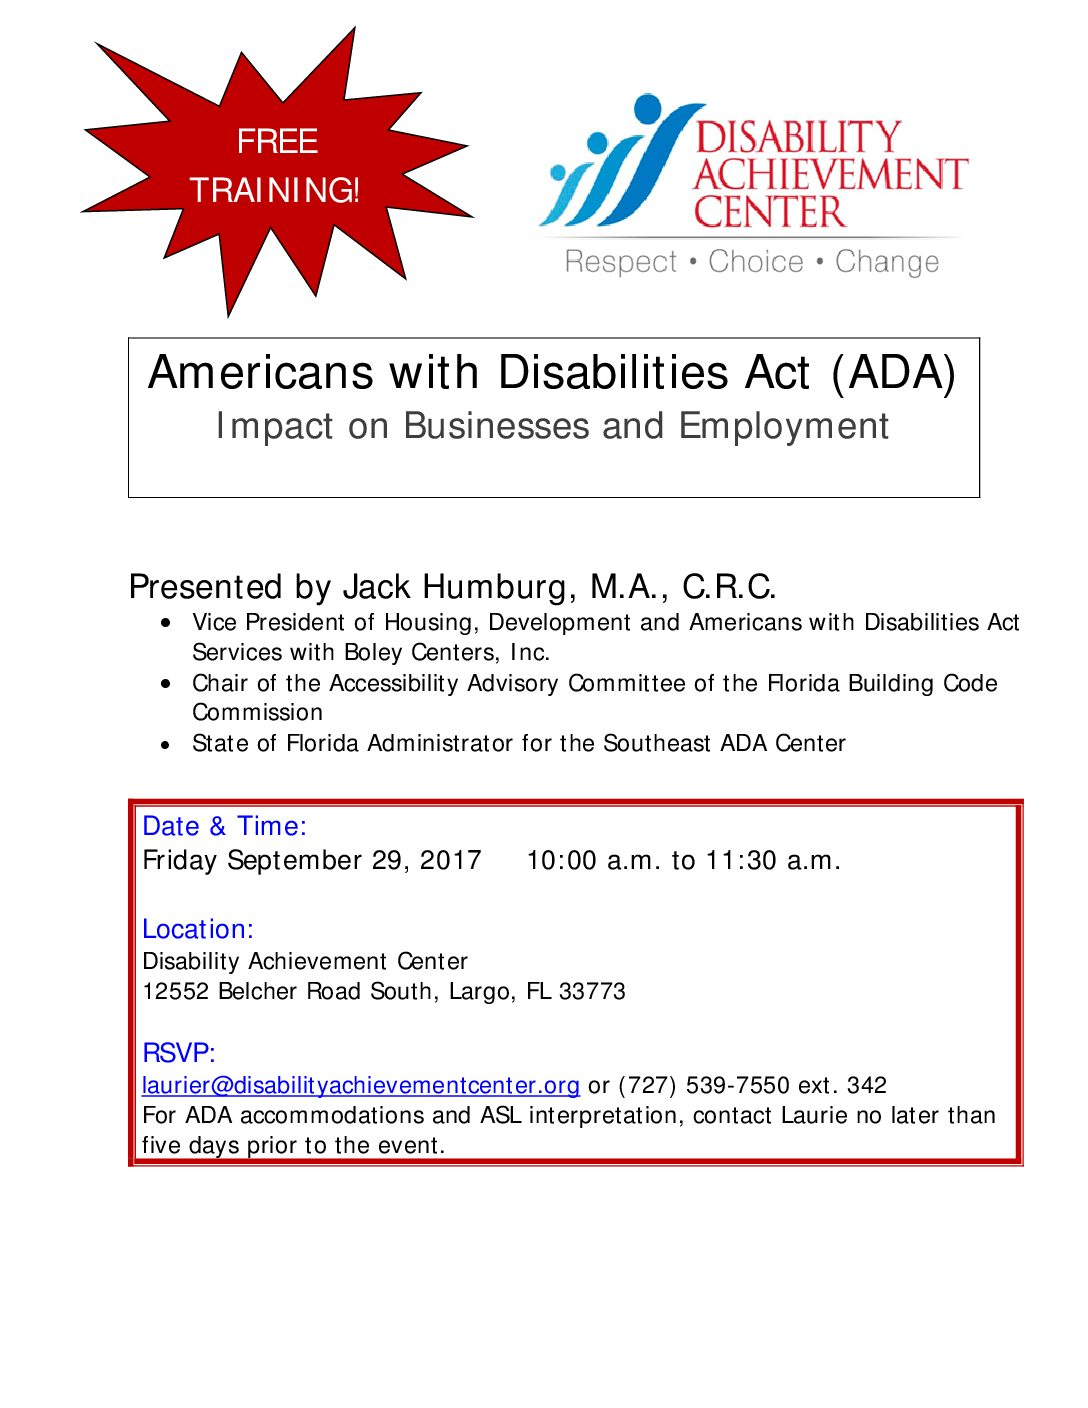 FREE ADA Training This Friday at DAC!